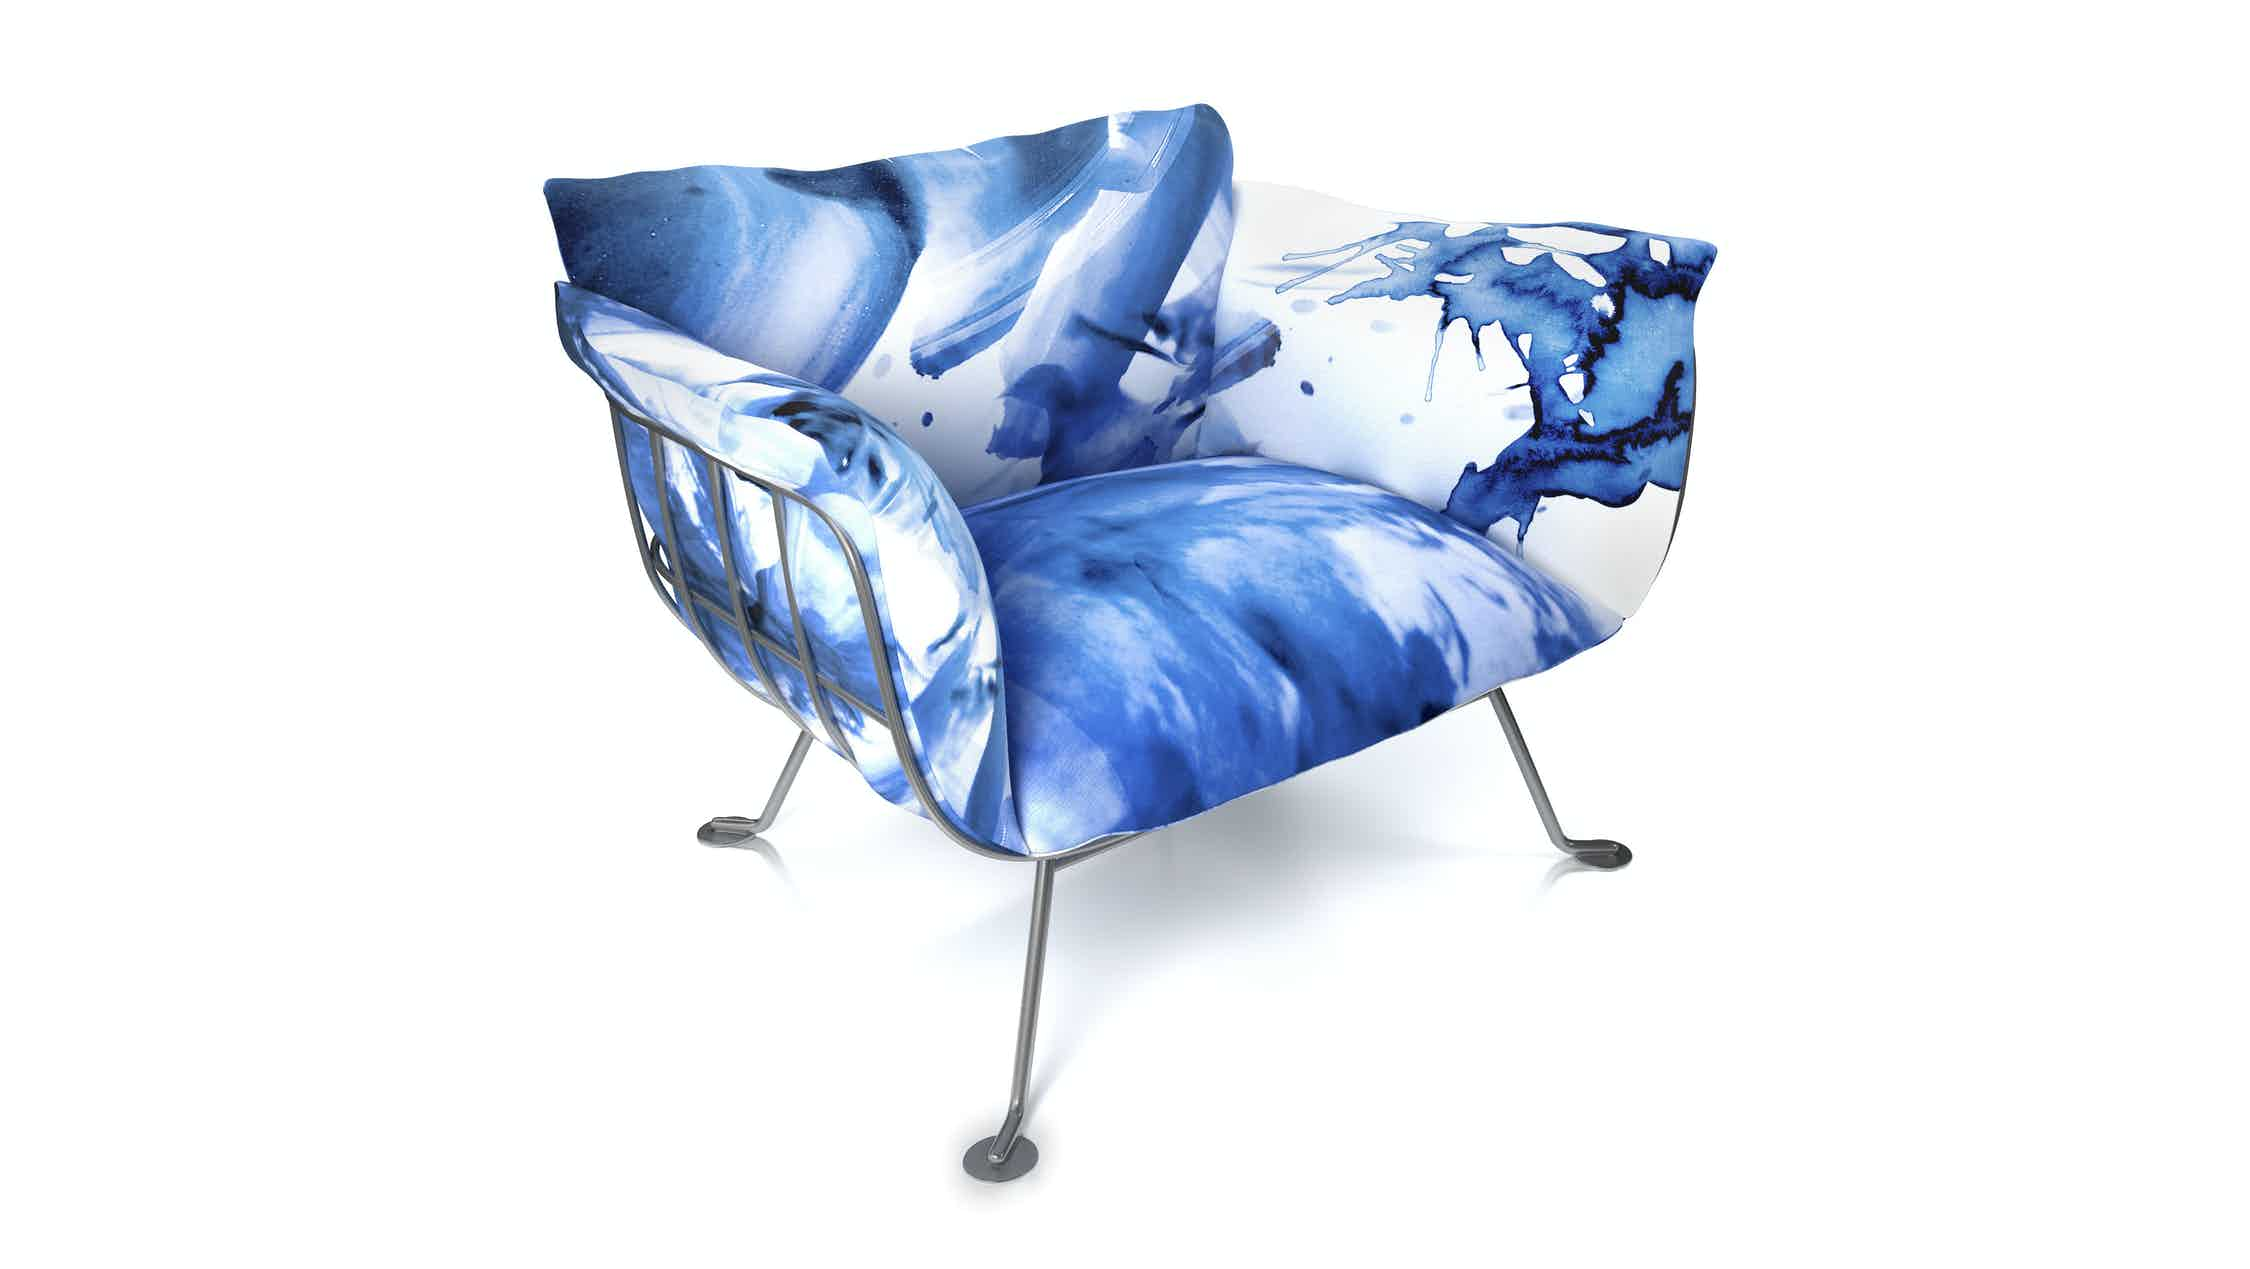 Nest Chair Old Blue By Marcel Wanders For Moooi Moooi 300Dpi Moooi